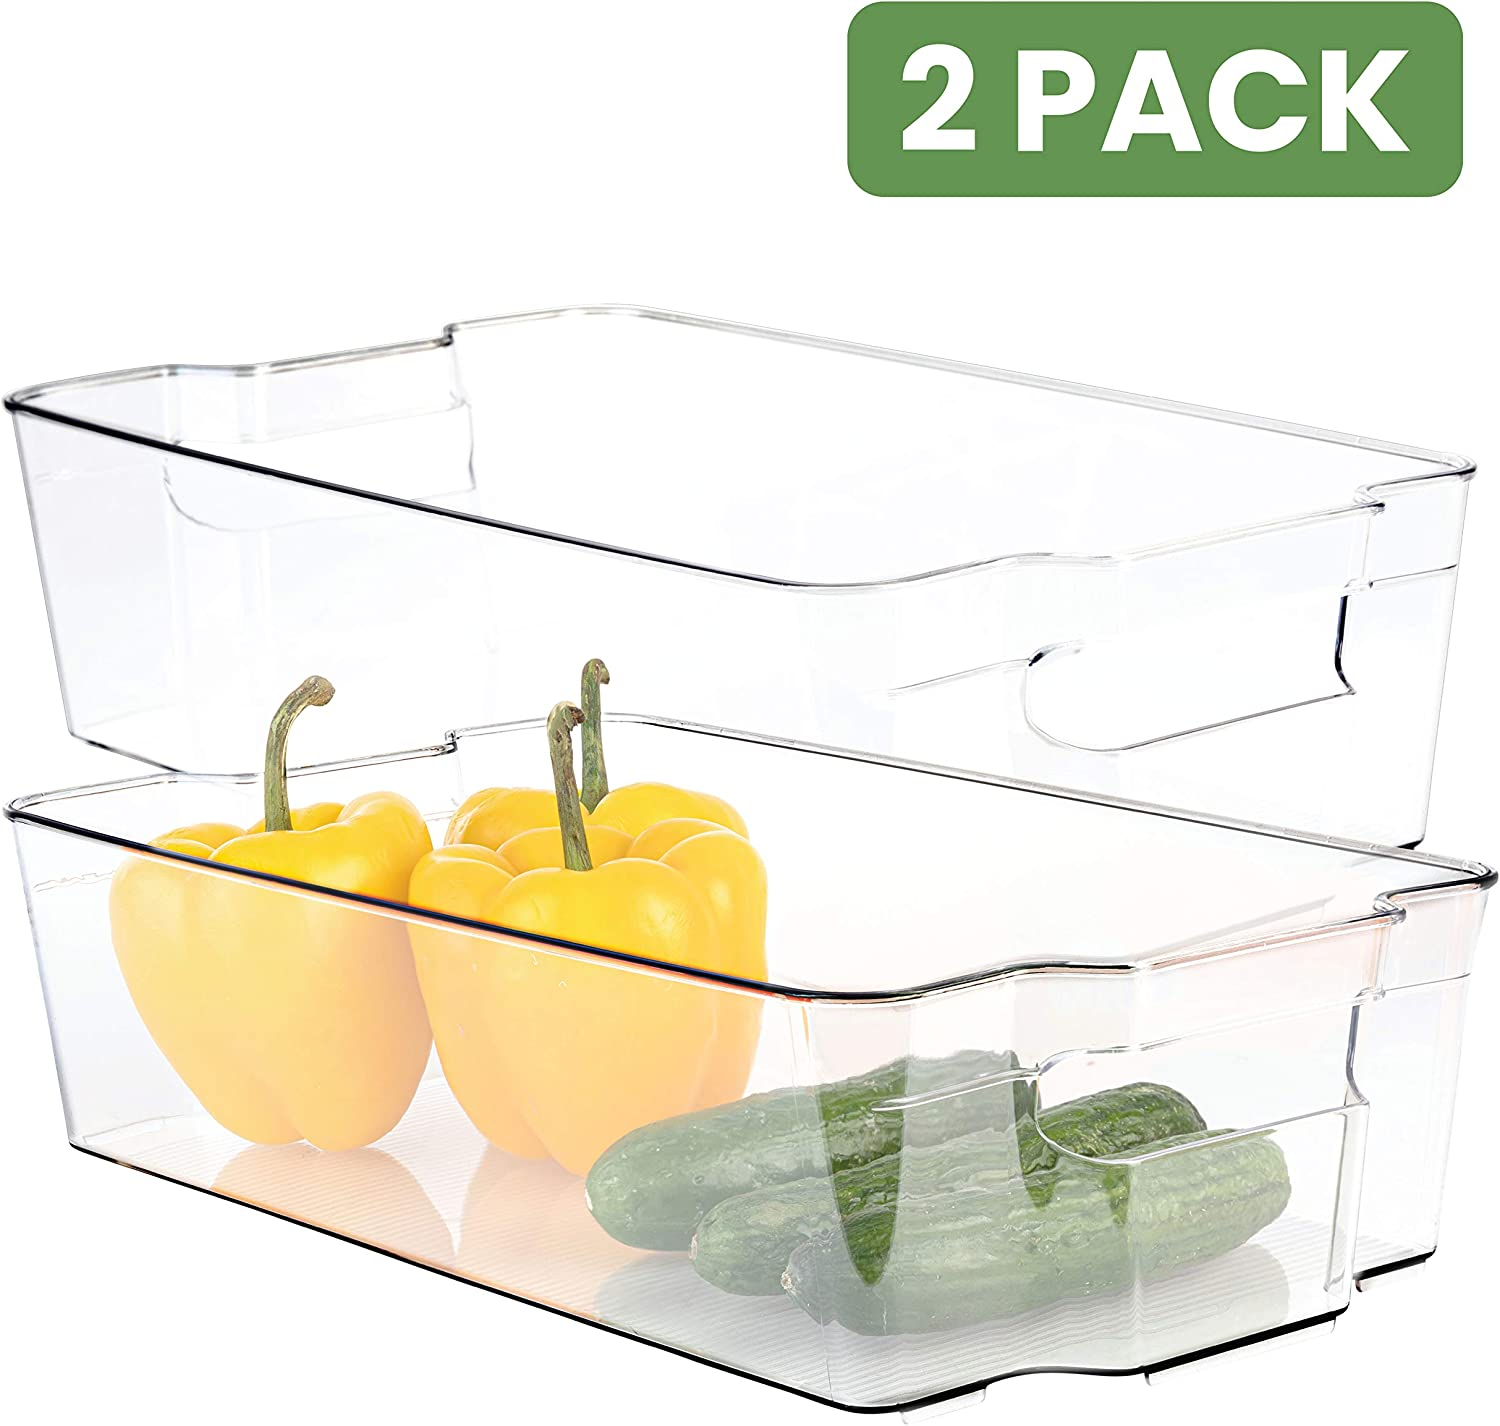 Homeries Fridge Organizer Storage Bins (Pack of 2) – Stackable Freezer & Refrigerator Organizer Container for Kitchen, Pantry, Drawer, Cabinets, Countertops – BPA Free – Multipurpose & Space Saving